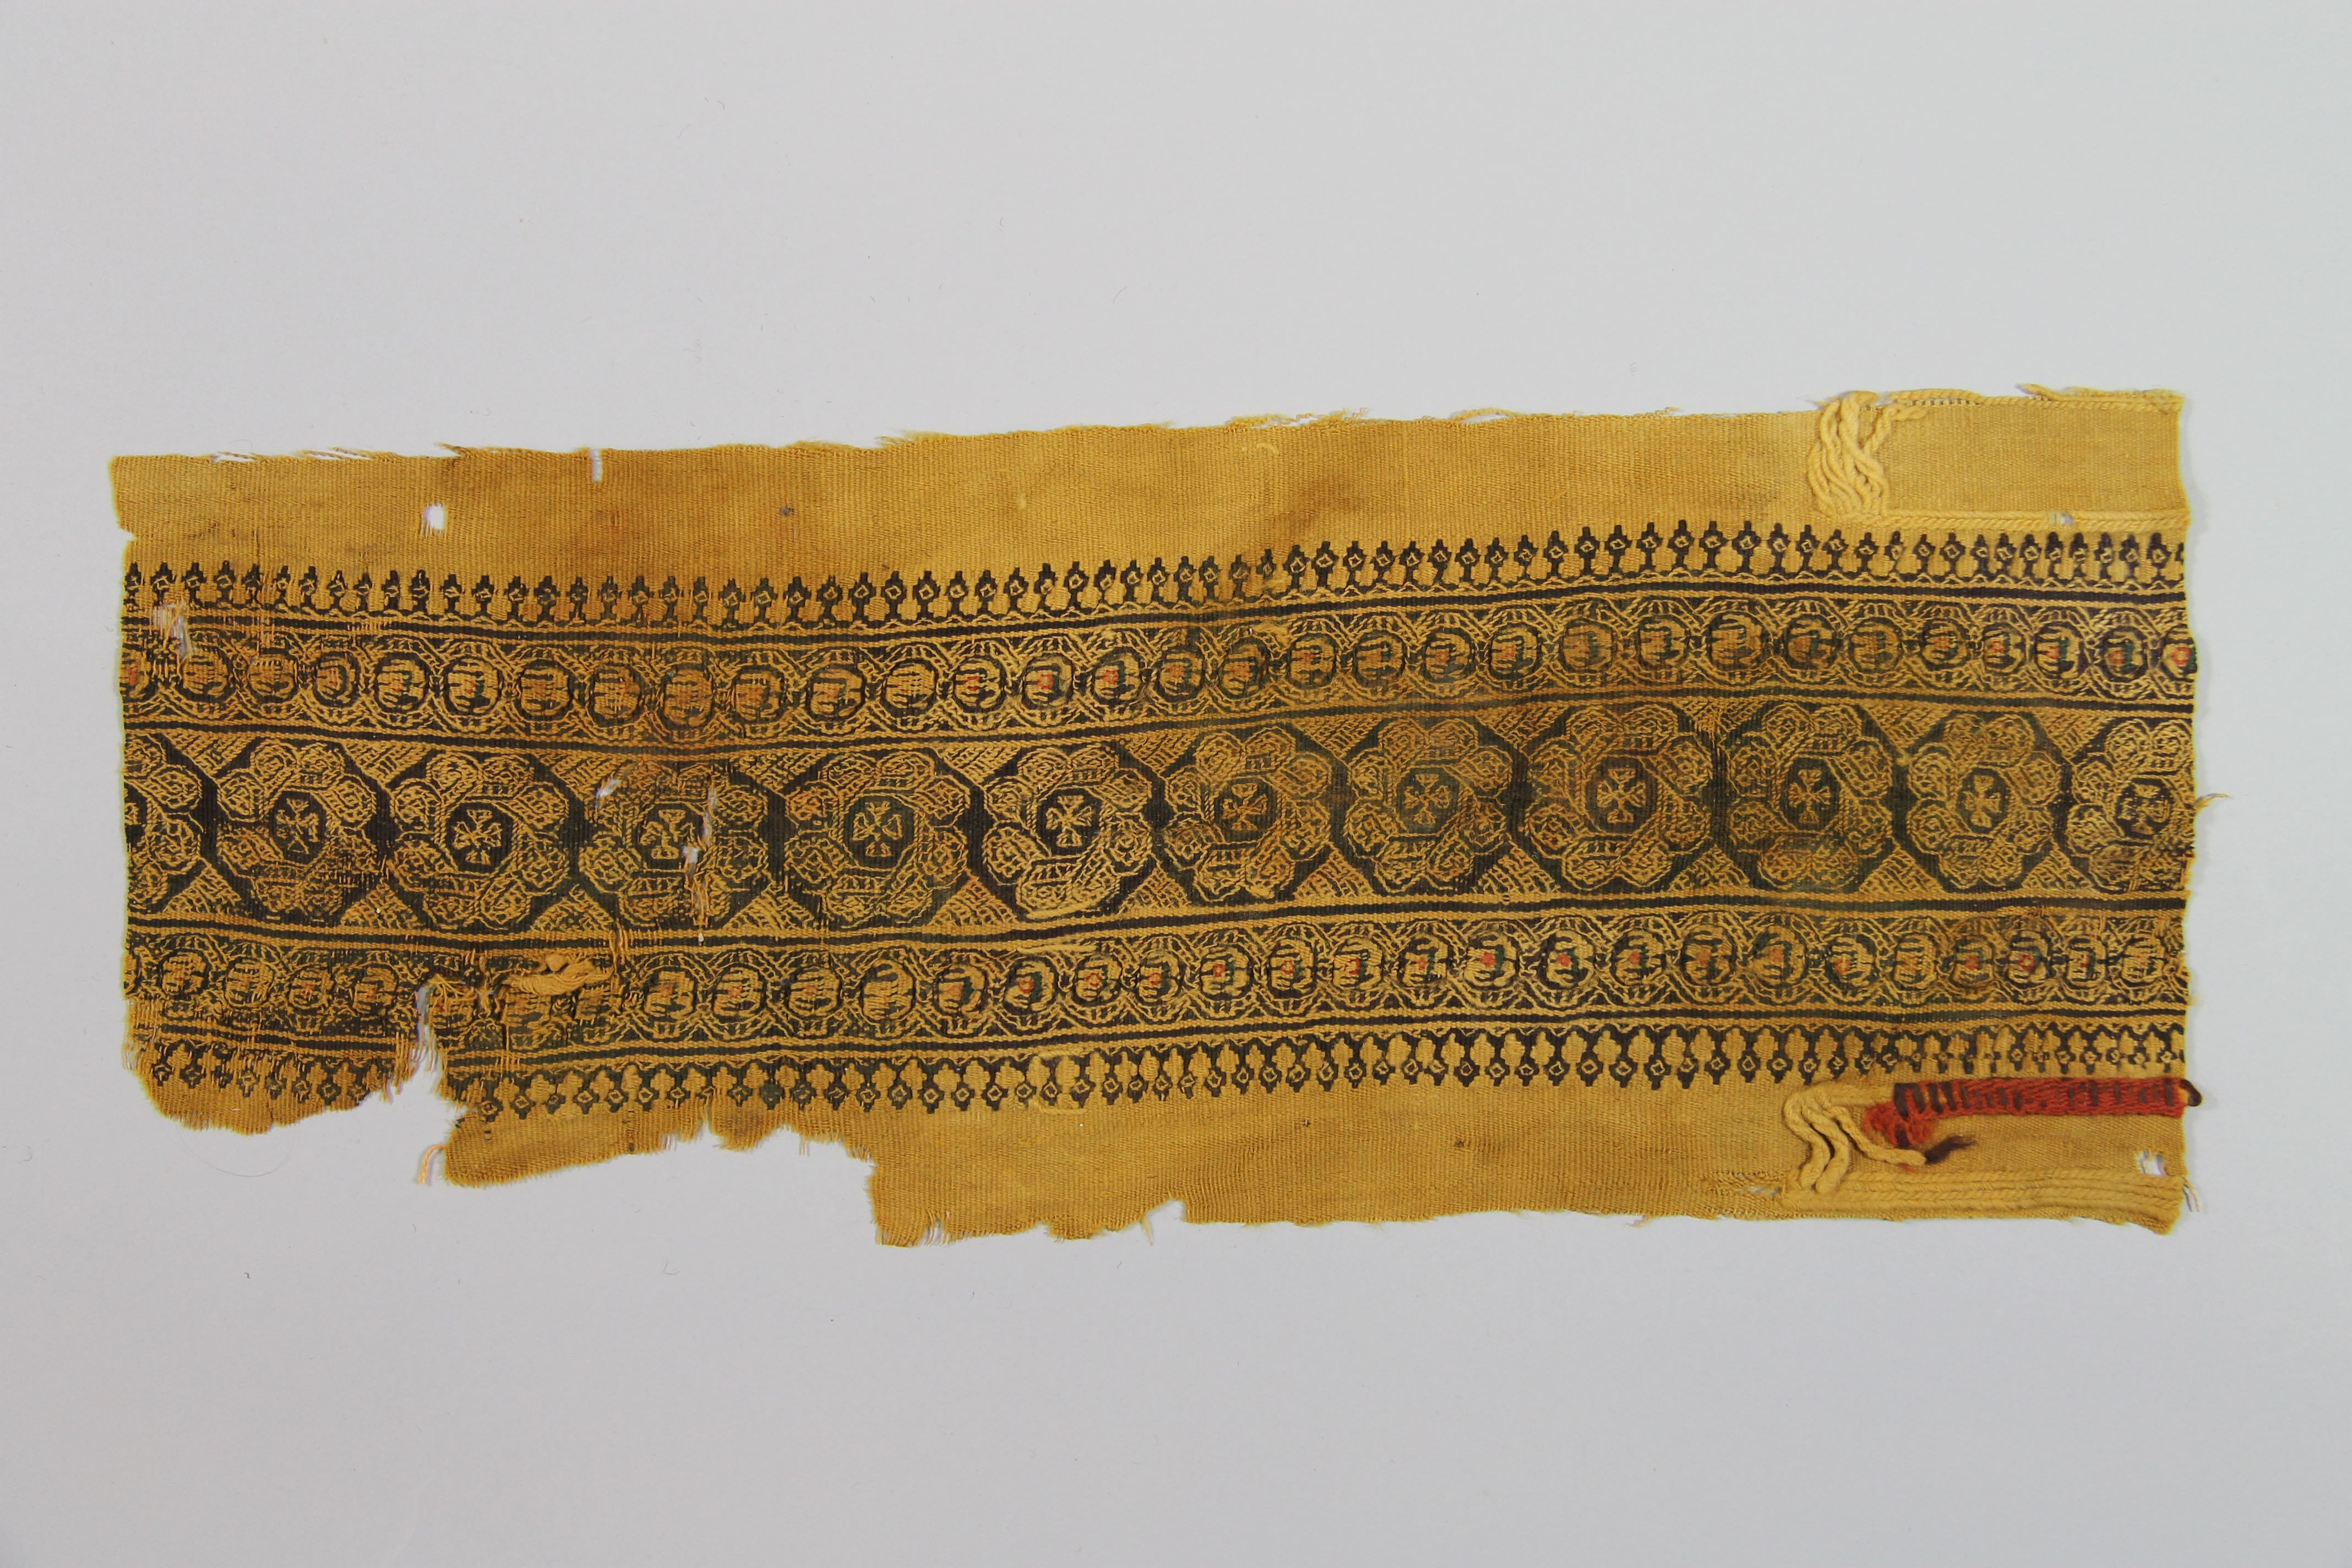 Tapestry band (fragment)